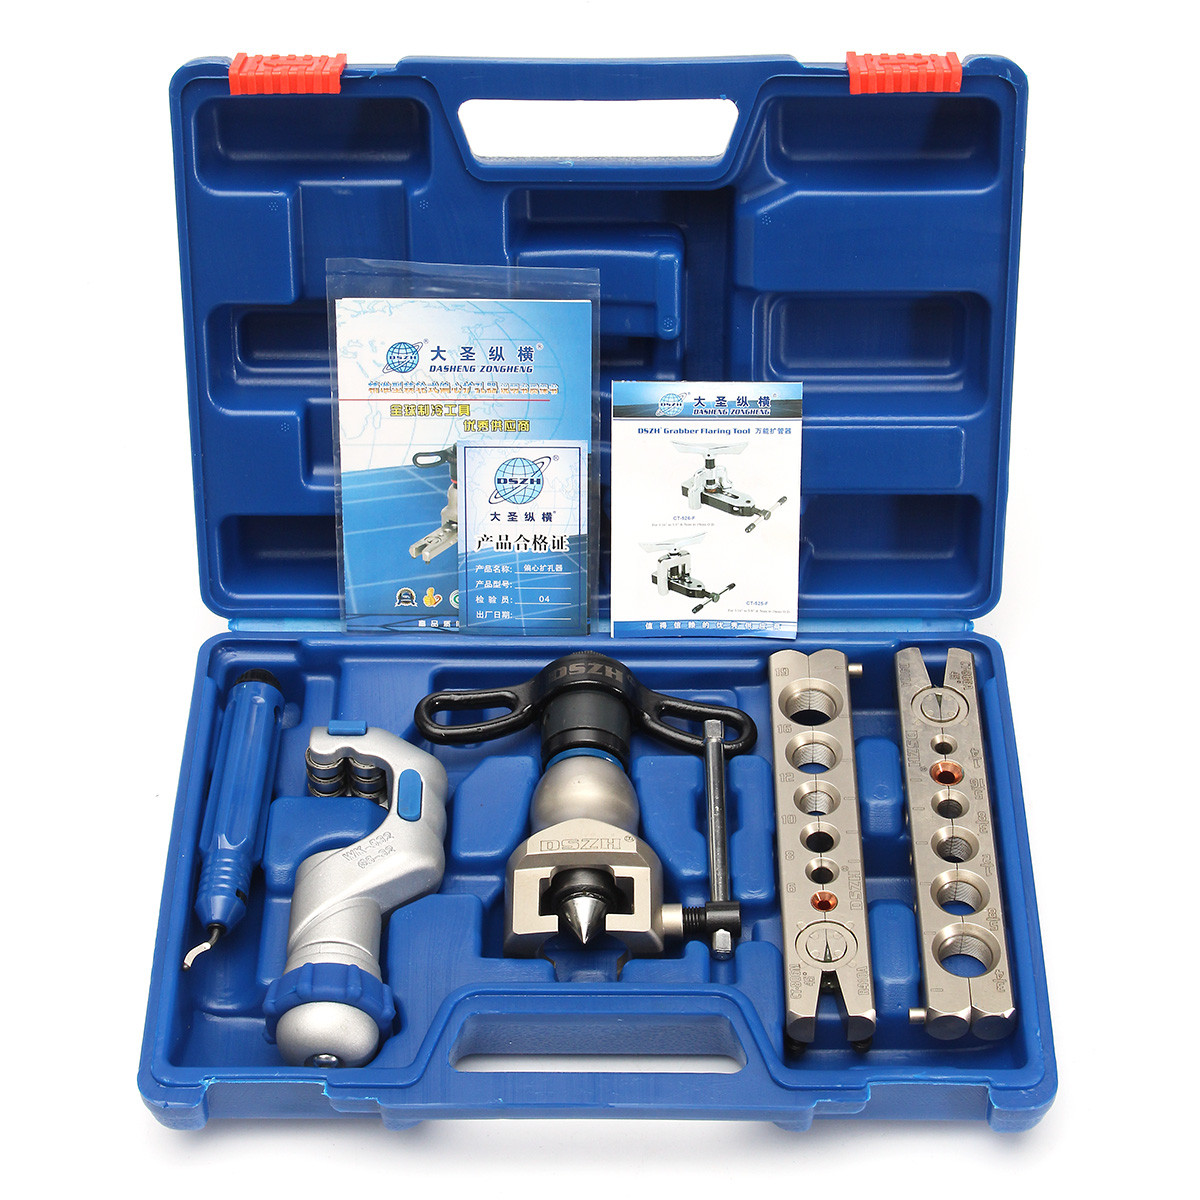 6-19mm Ratchet Flaring Flare Tool Kit Refrigeration Eccentric Cone + Pipe Cutter R806FT Hardness Flaring Kit